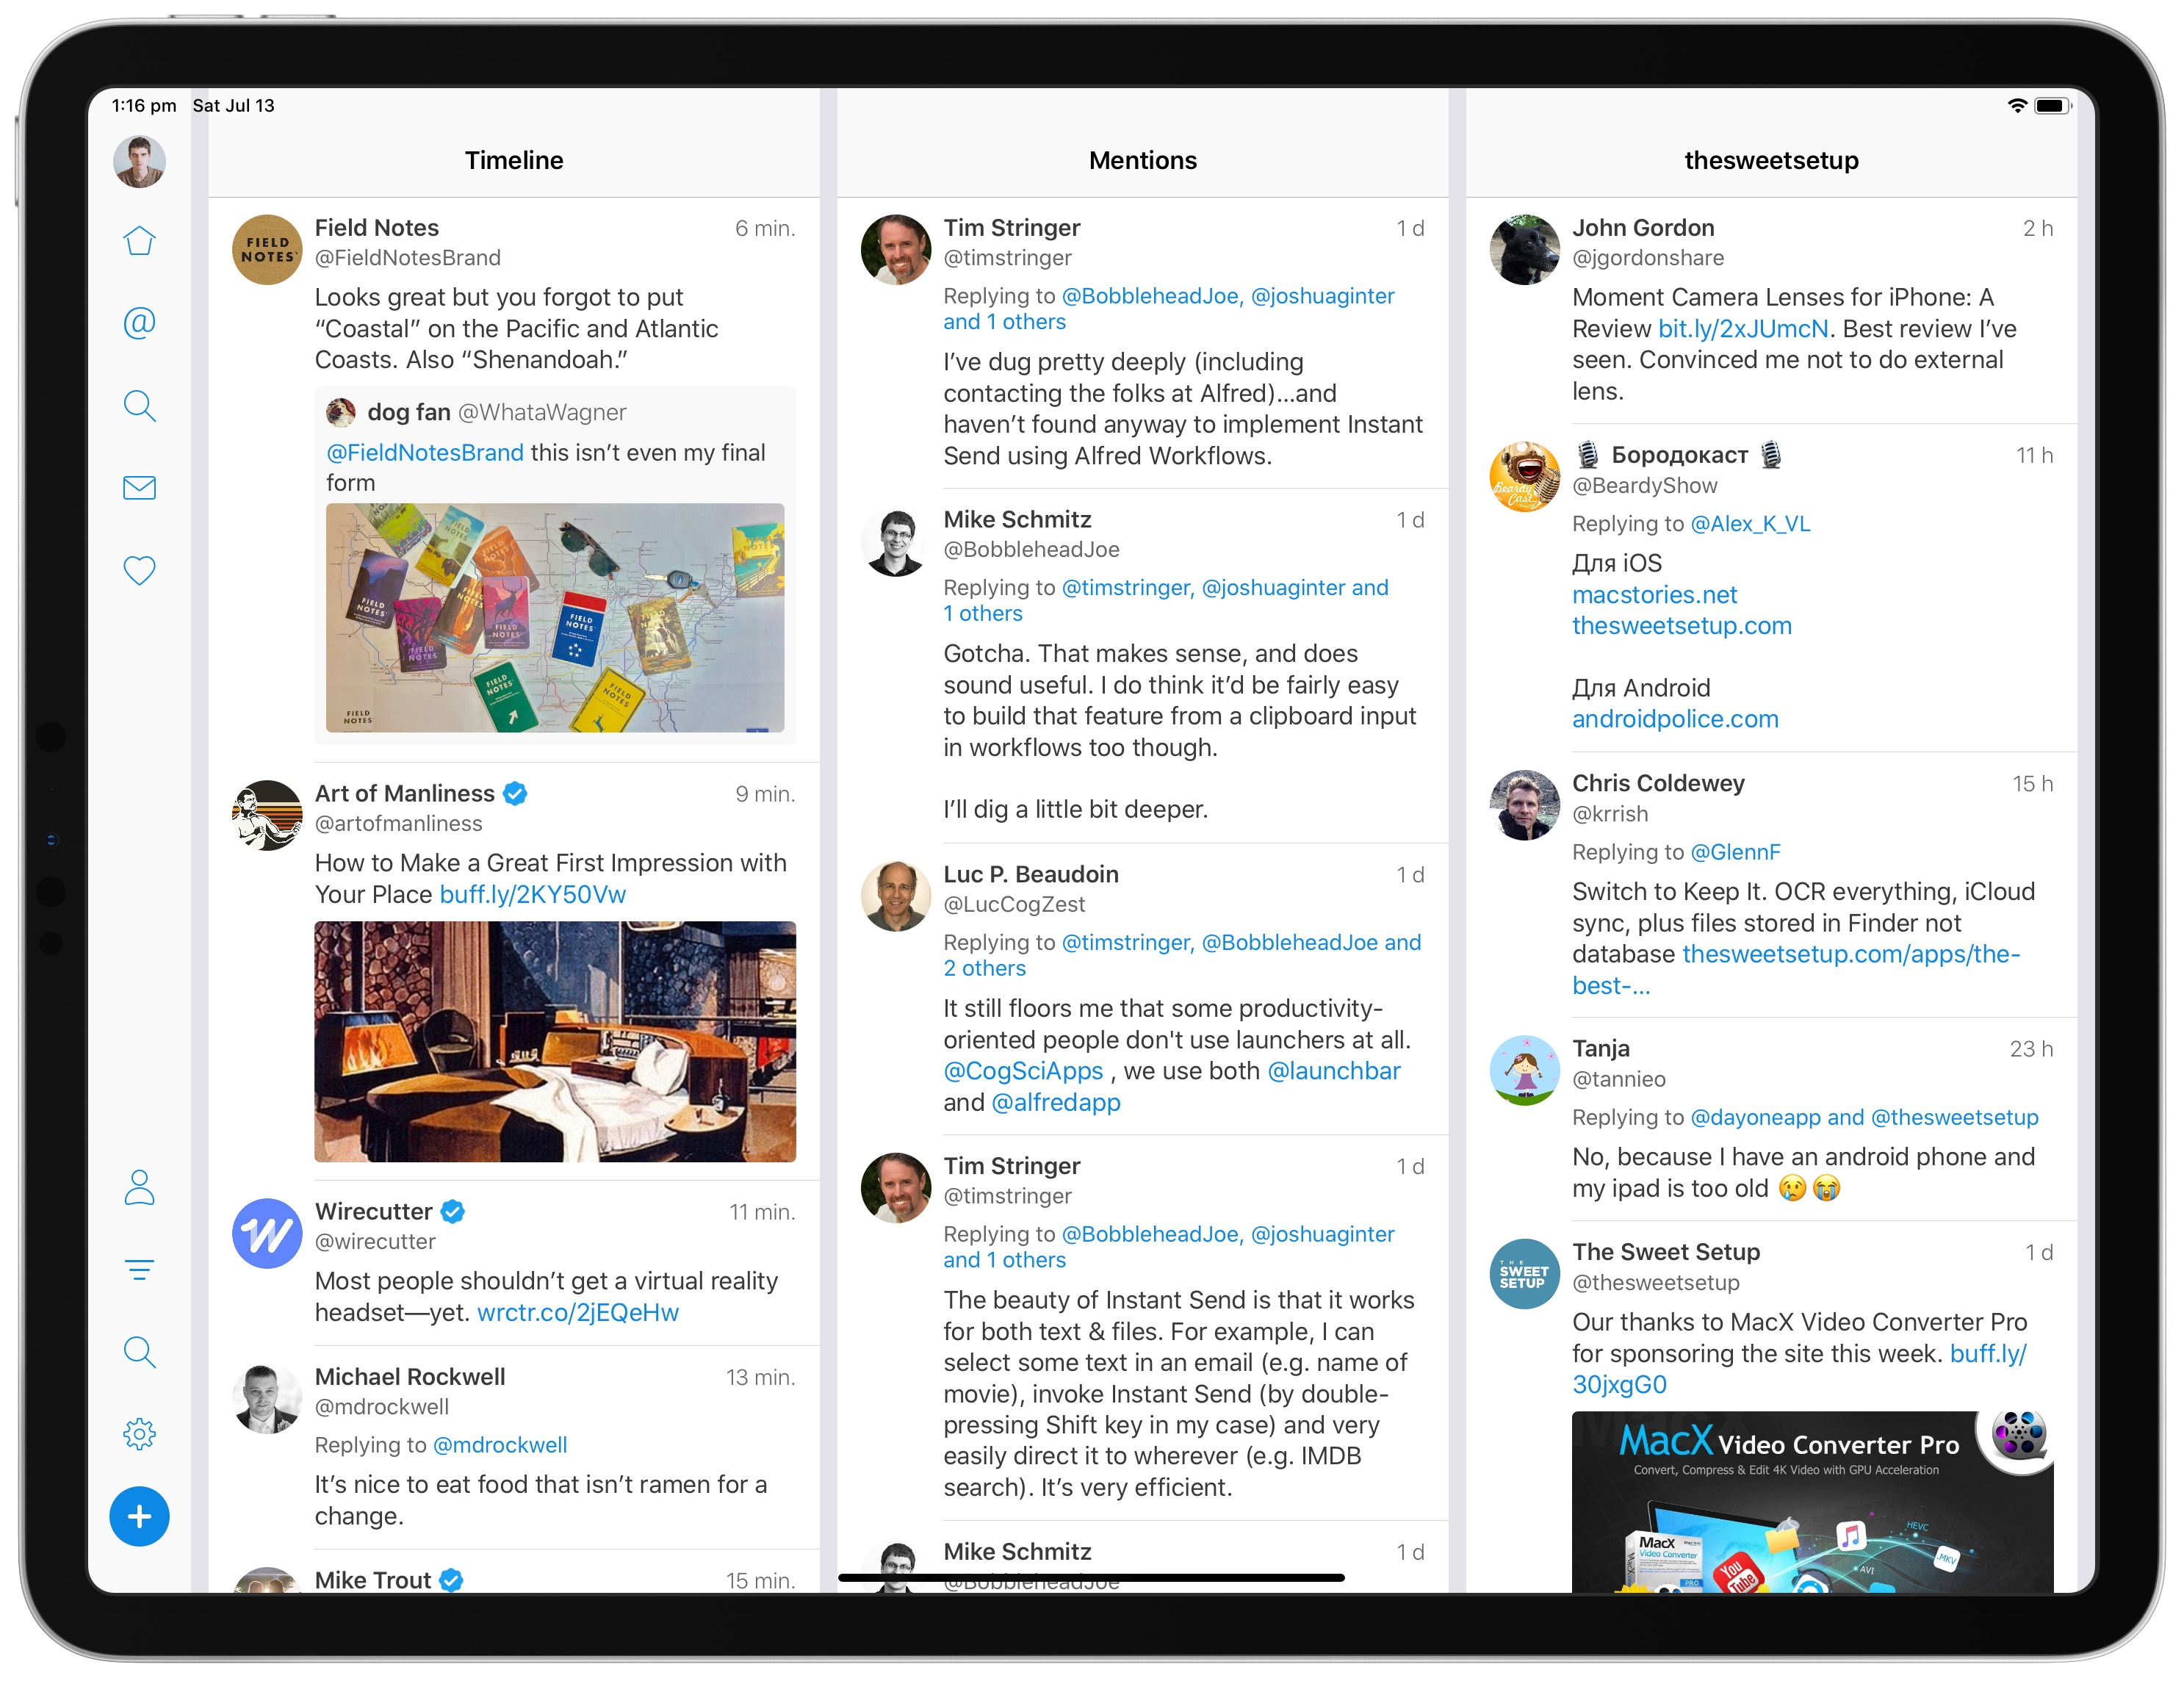 Fine Fenix The Full Screened Full Featured Ipad Twitter Client Download Free Architecture Designs Scobabritishbridgeorg